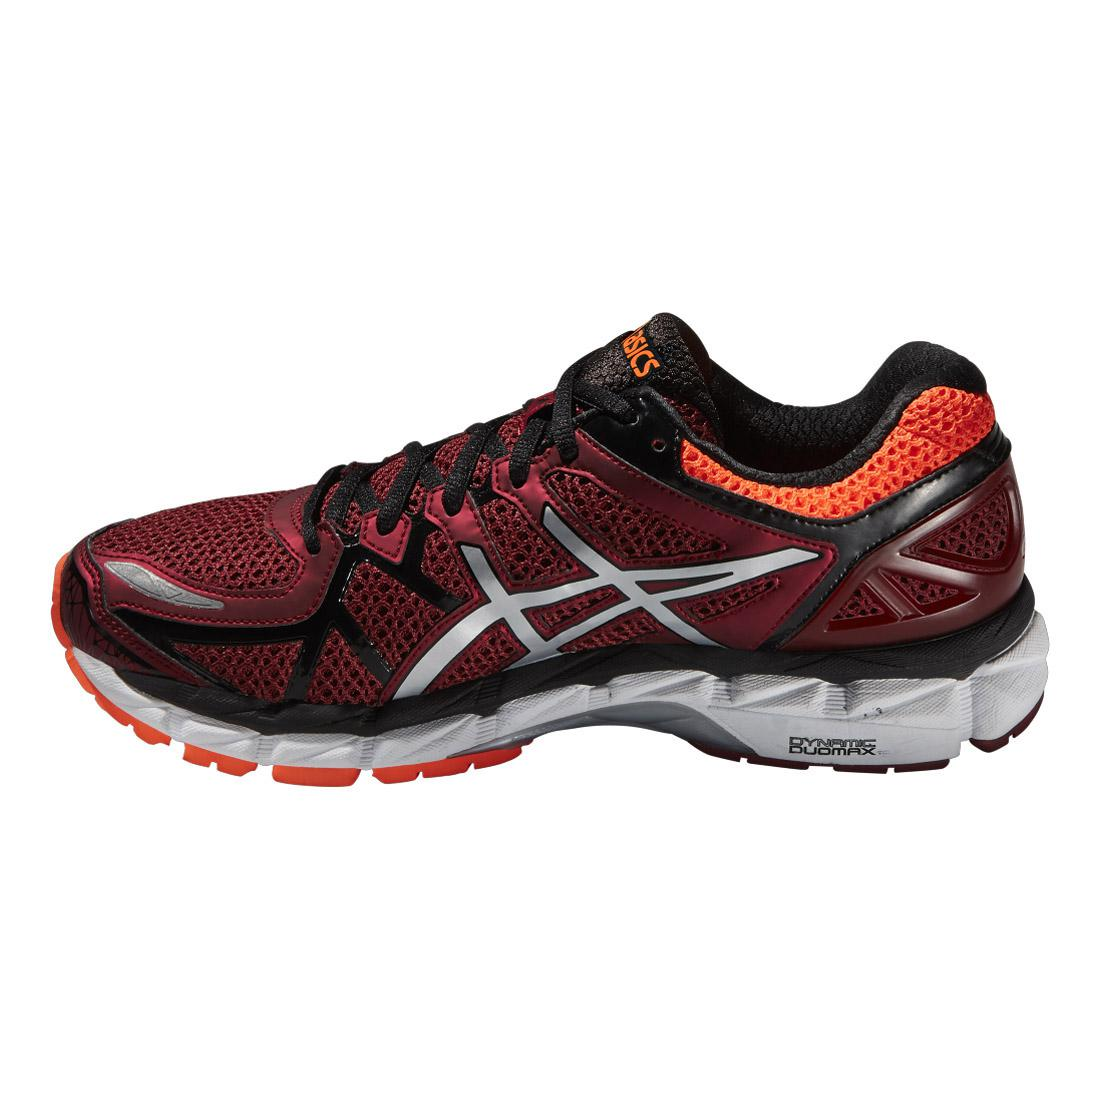 asics mens gel kayano 21 running shoes red orange. Black Bedroom Furniture Sets. Home Design Ideas